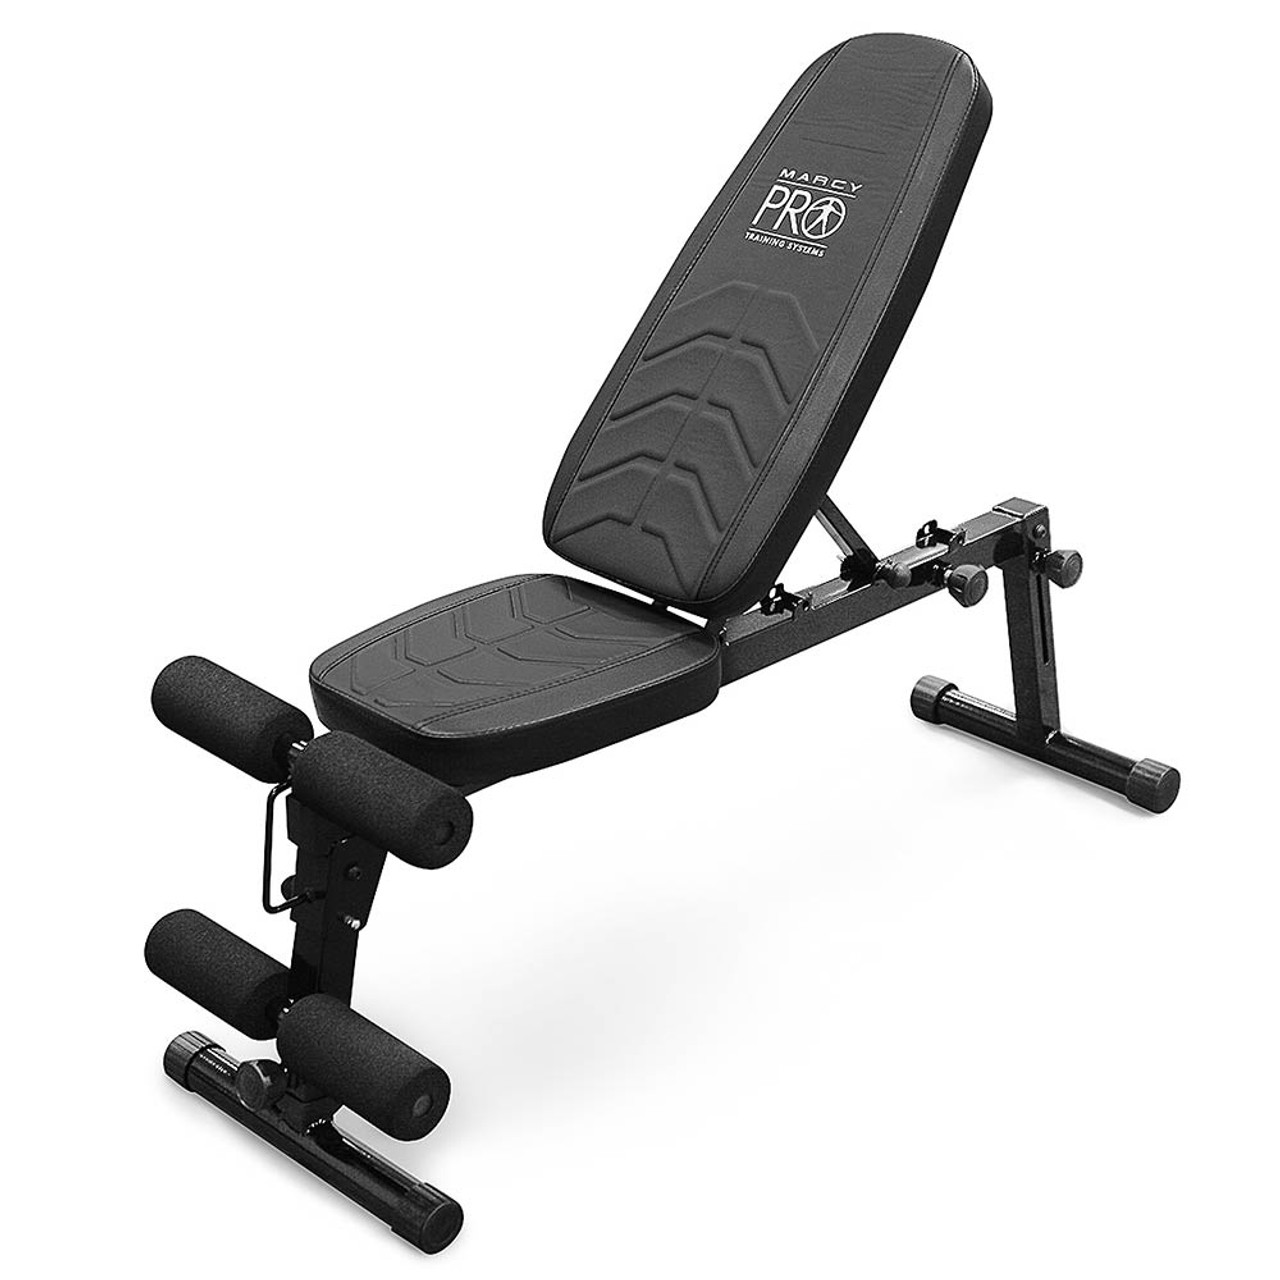 Marcy Pro Utility Bench Pm 10110 Quality Strength Products